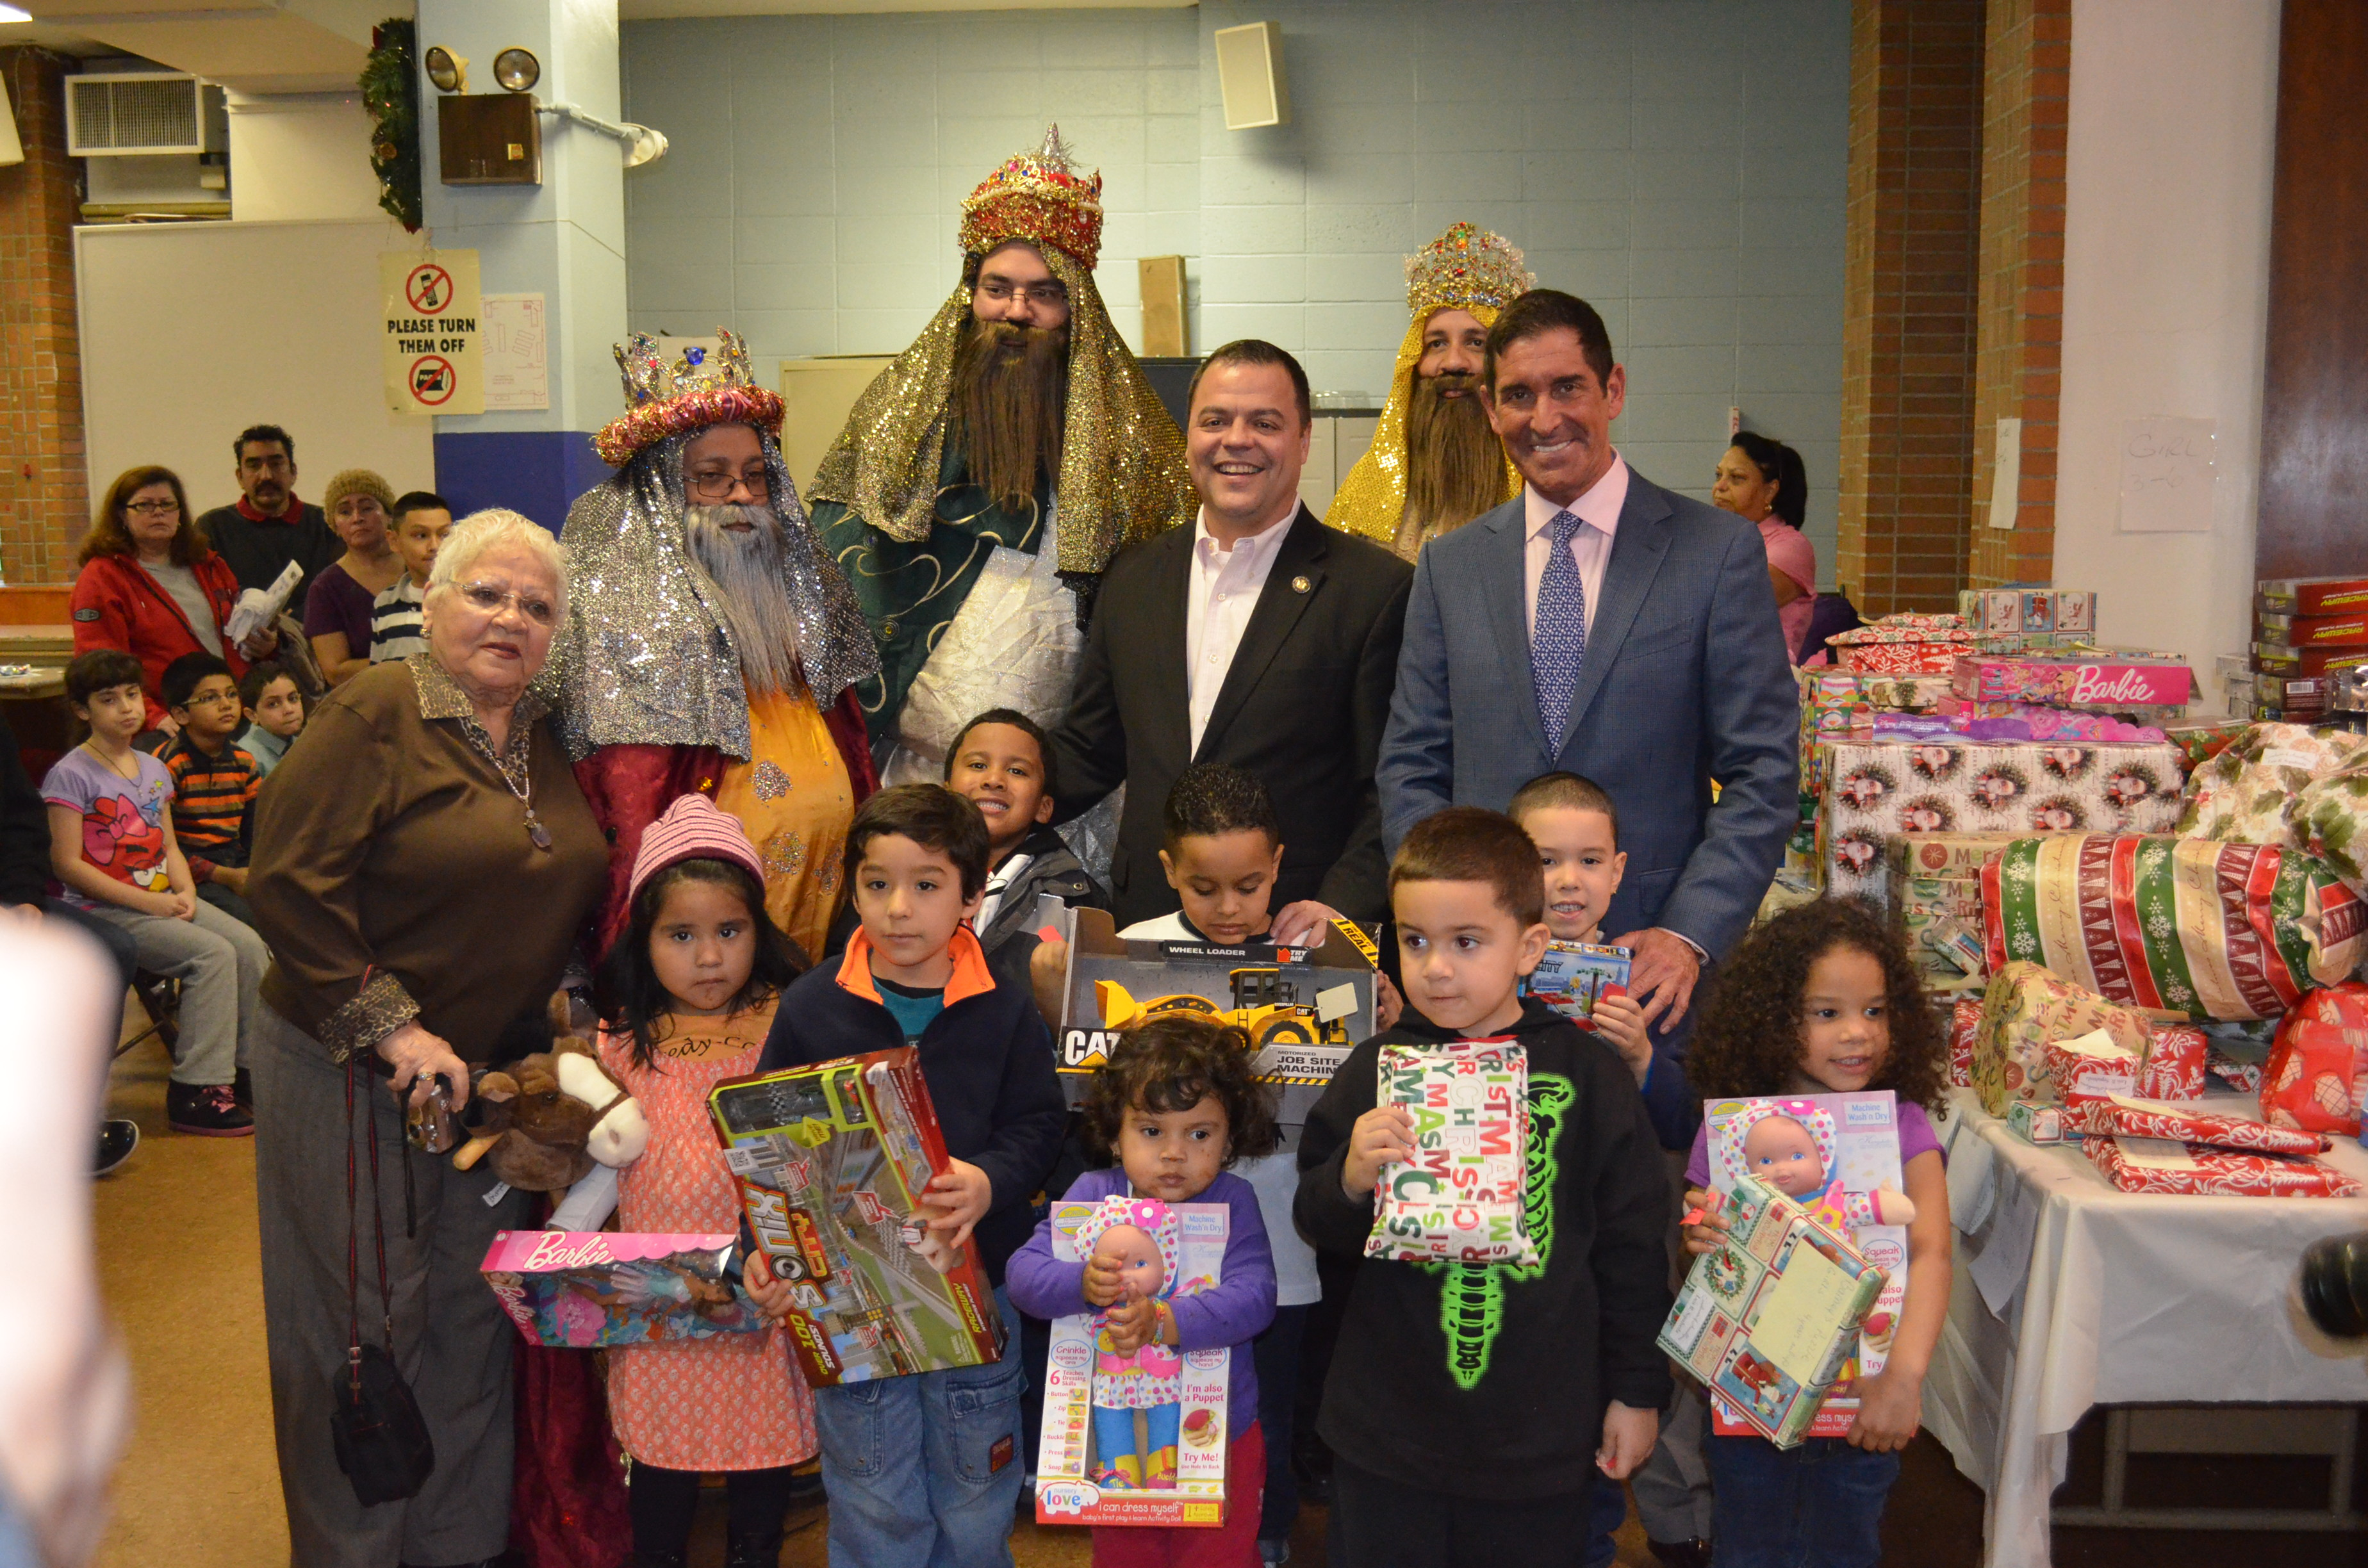 First Annual Three Kings celebration hosted by Senator Klein and Assemblyman Sepulveda